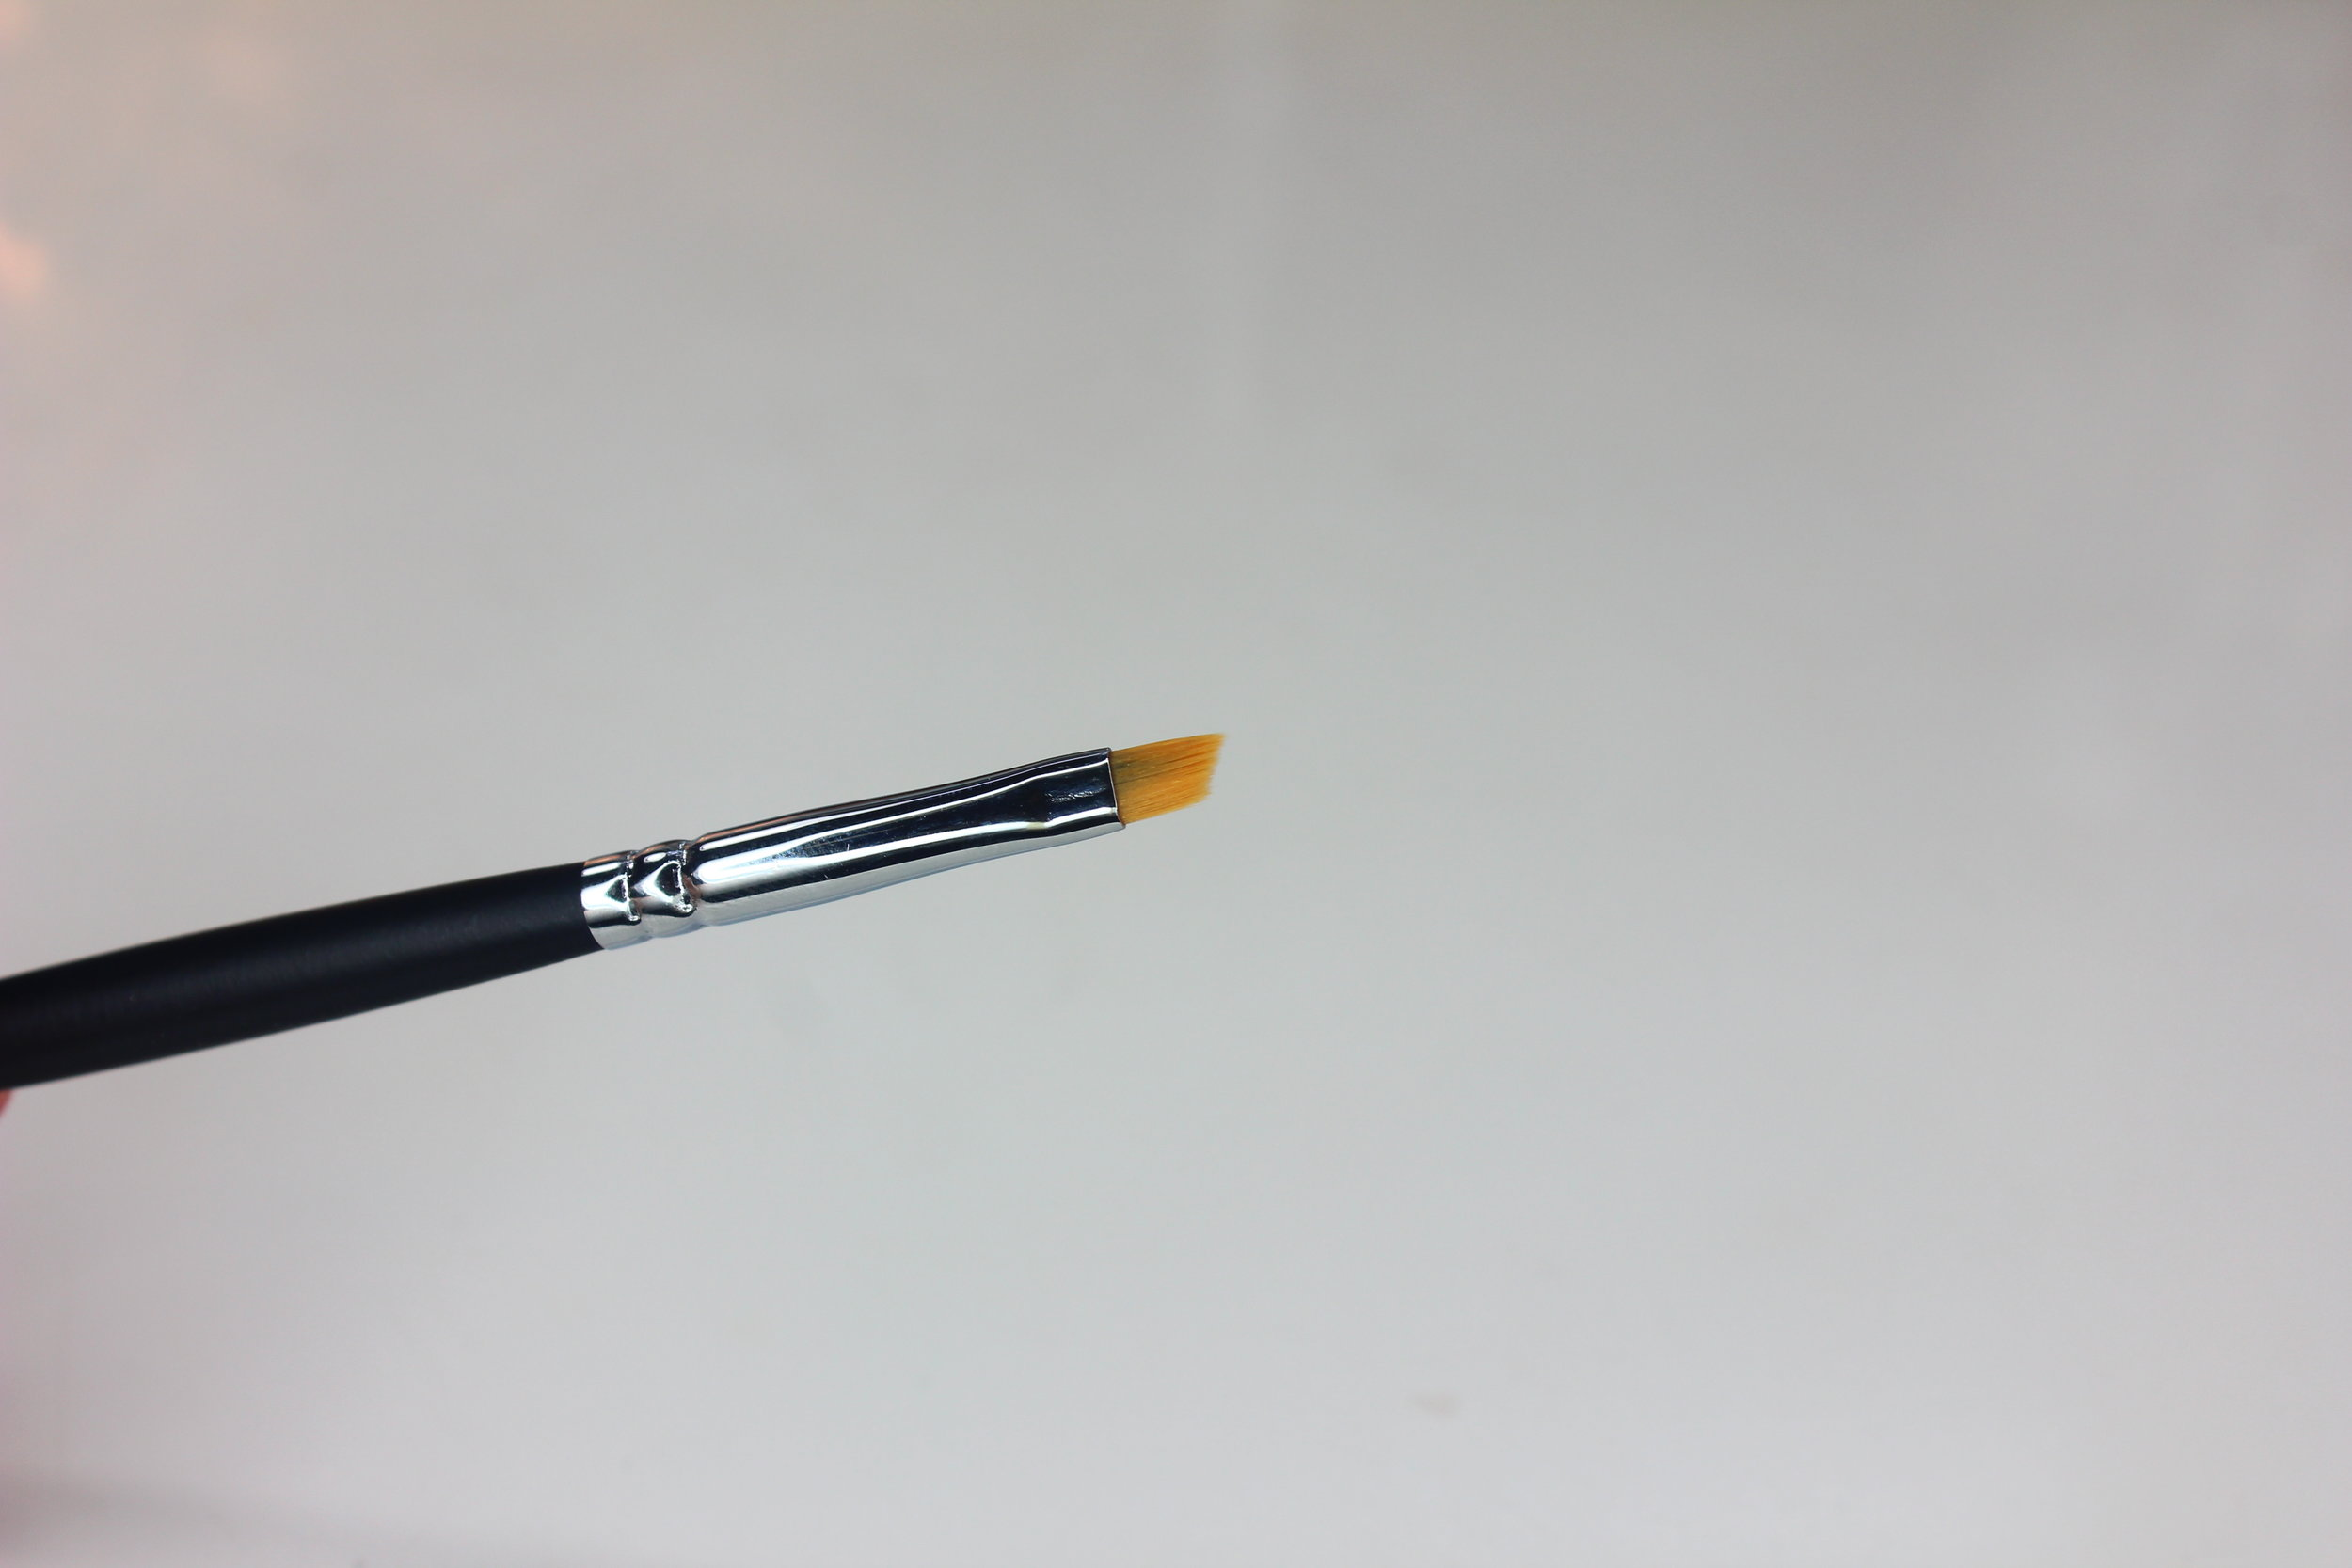 Morphe Brush 2 - M160 -1:16